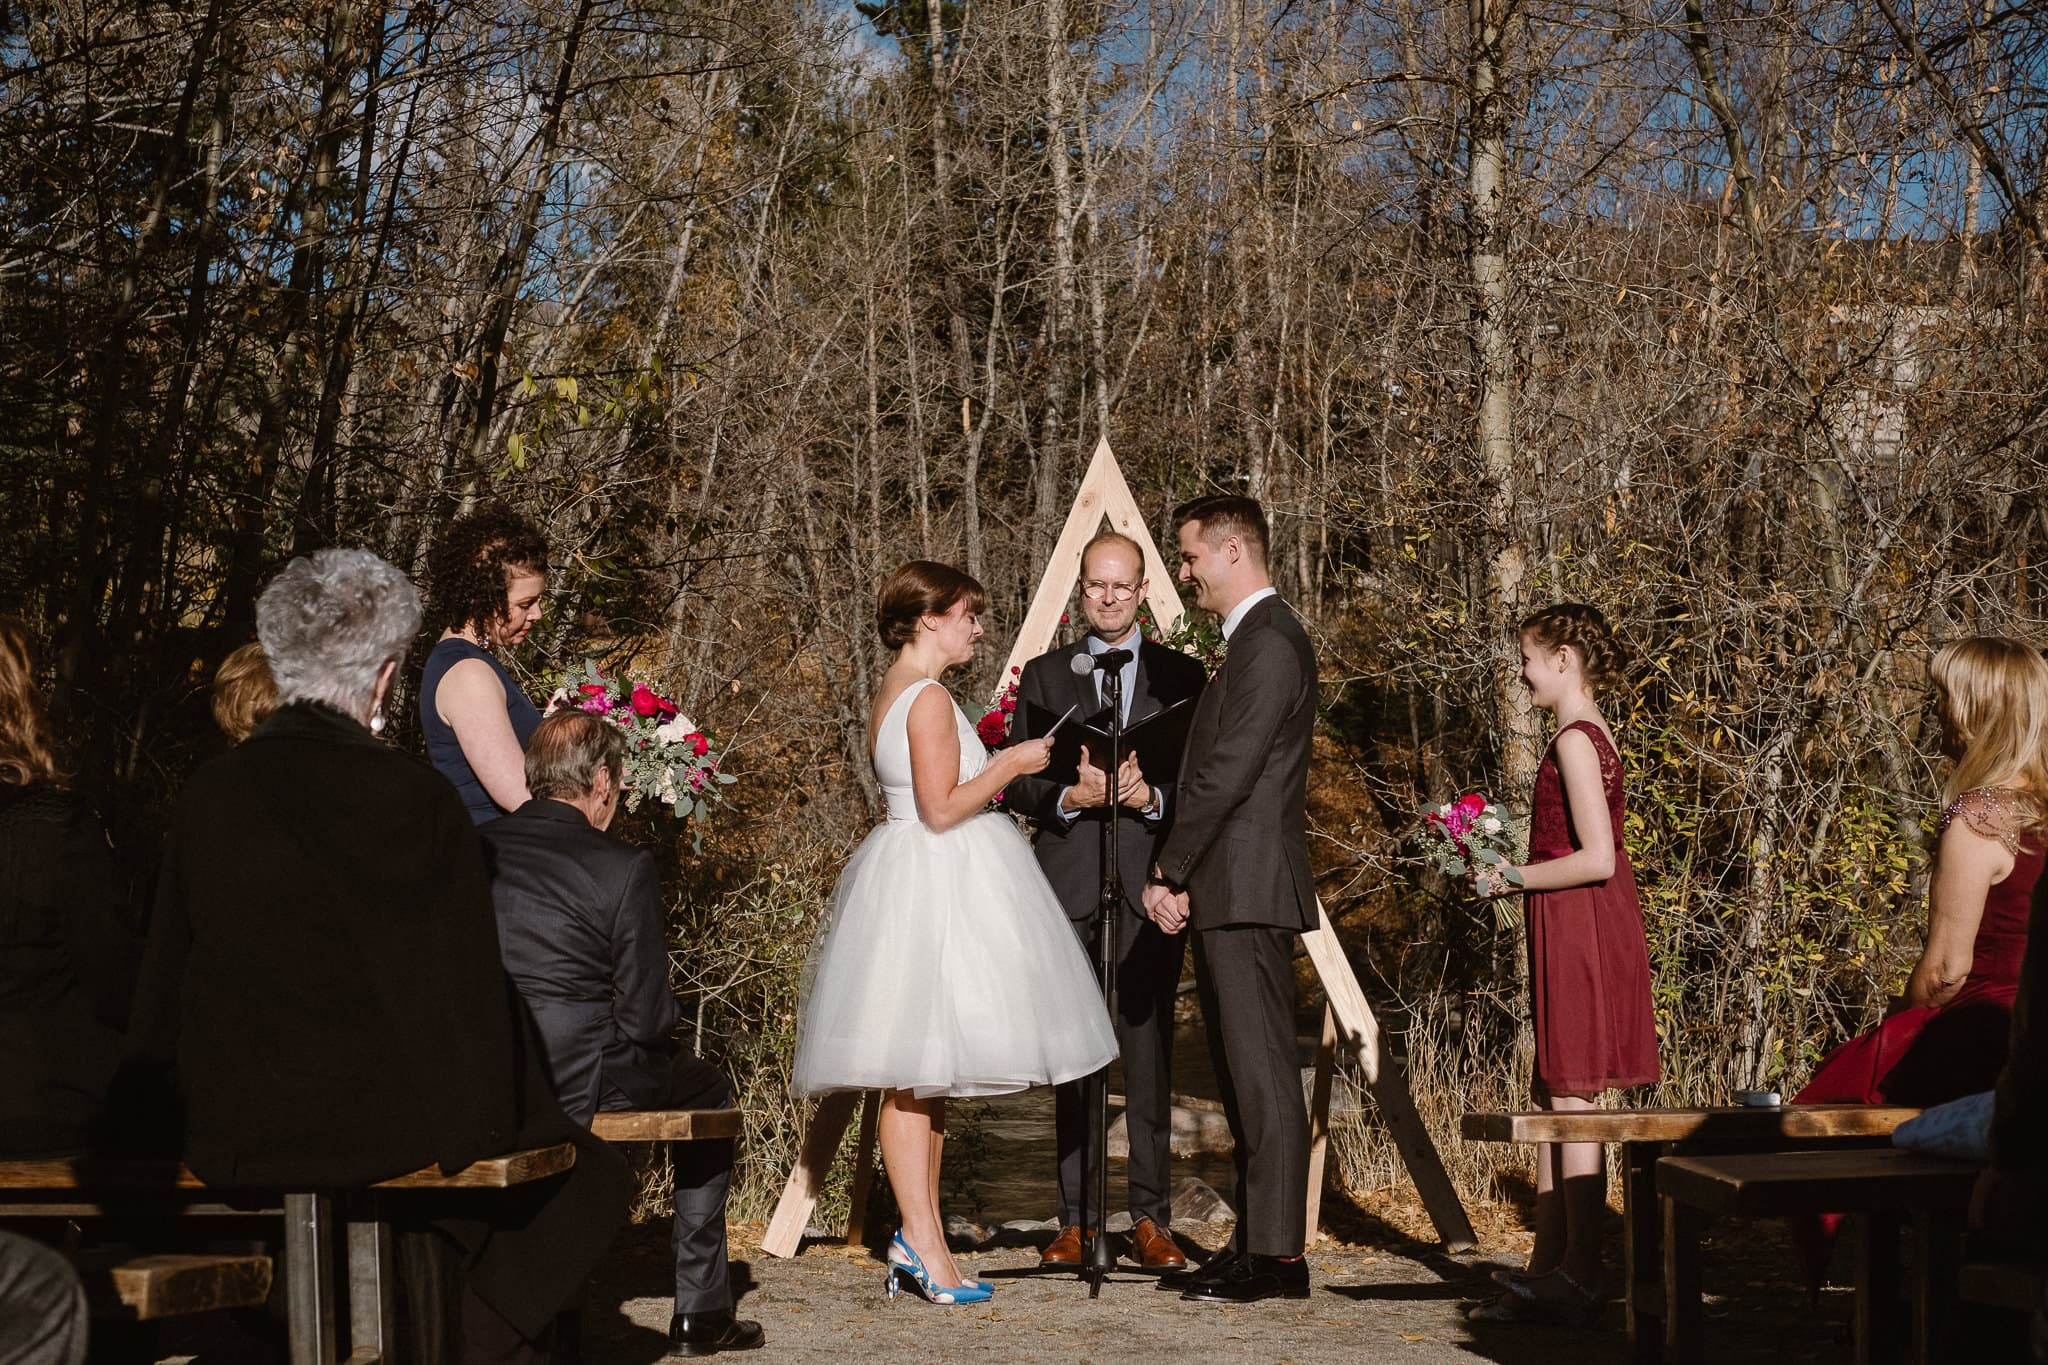 Silverthorne Pavilion wedding ceremony, Colorado wedding photographer, outdoor wedding ceremony, Colorado mountain wedding venues